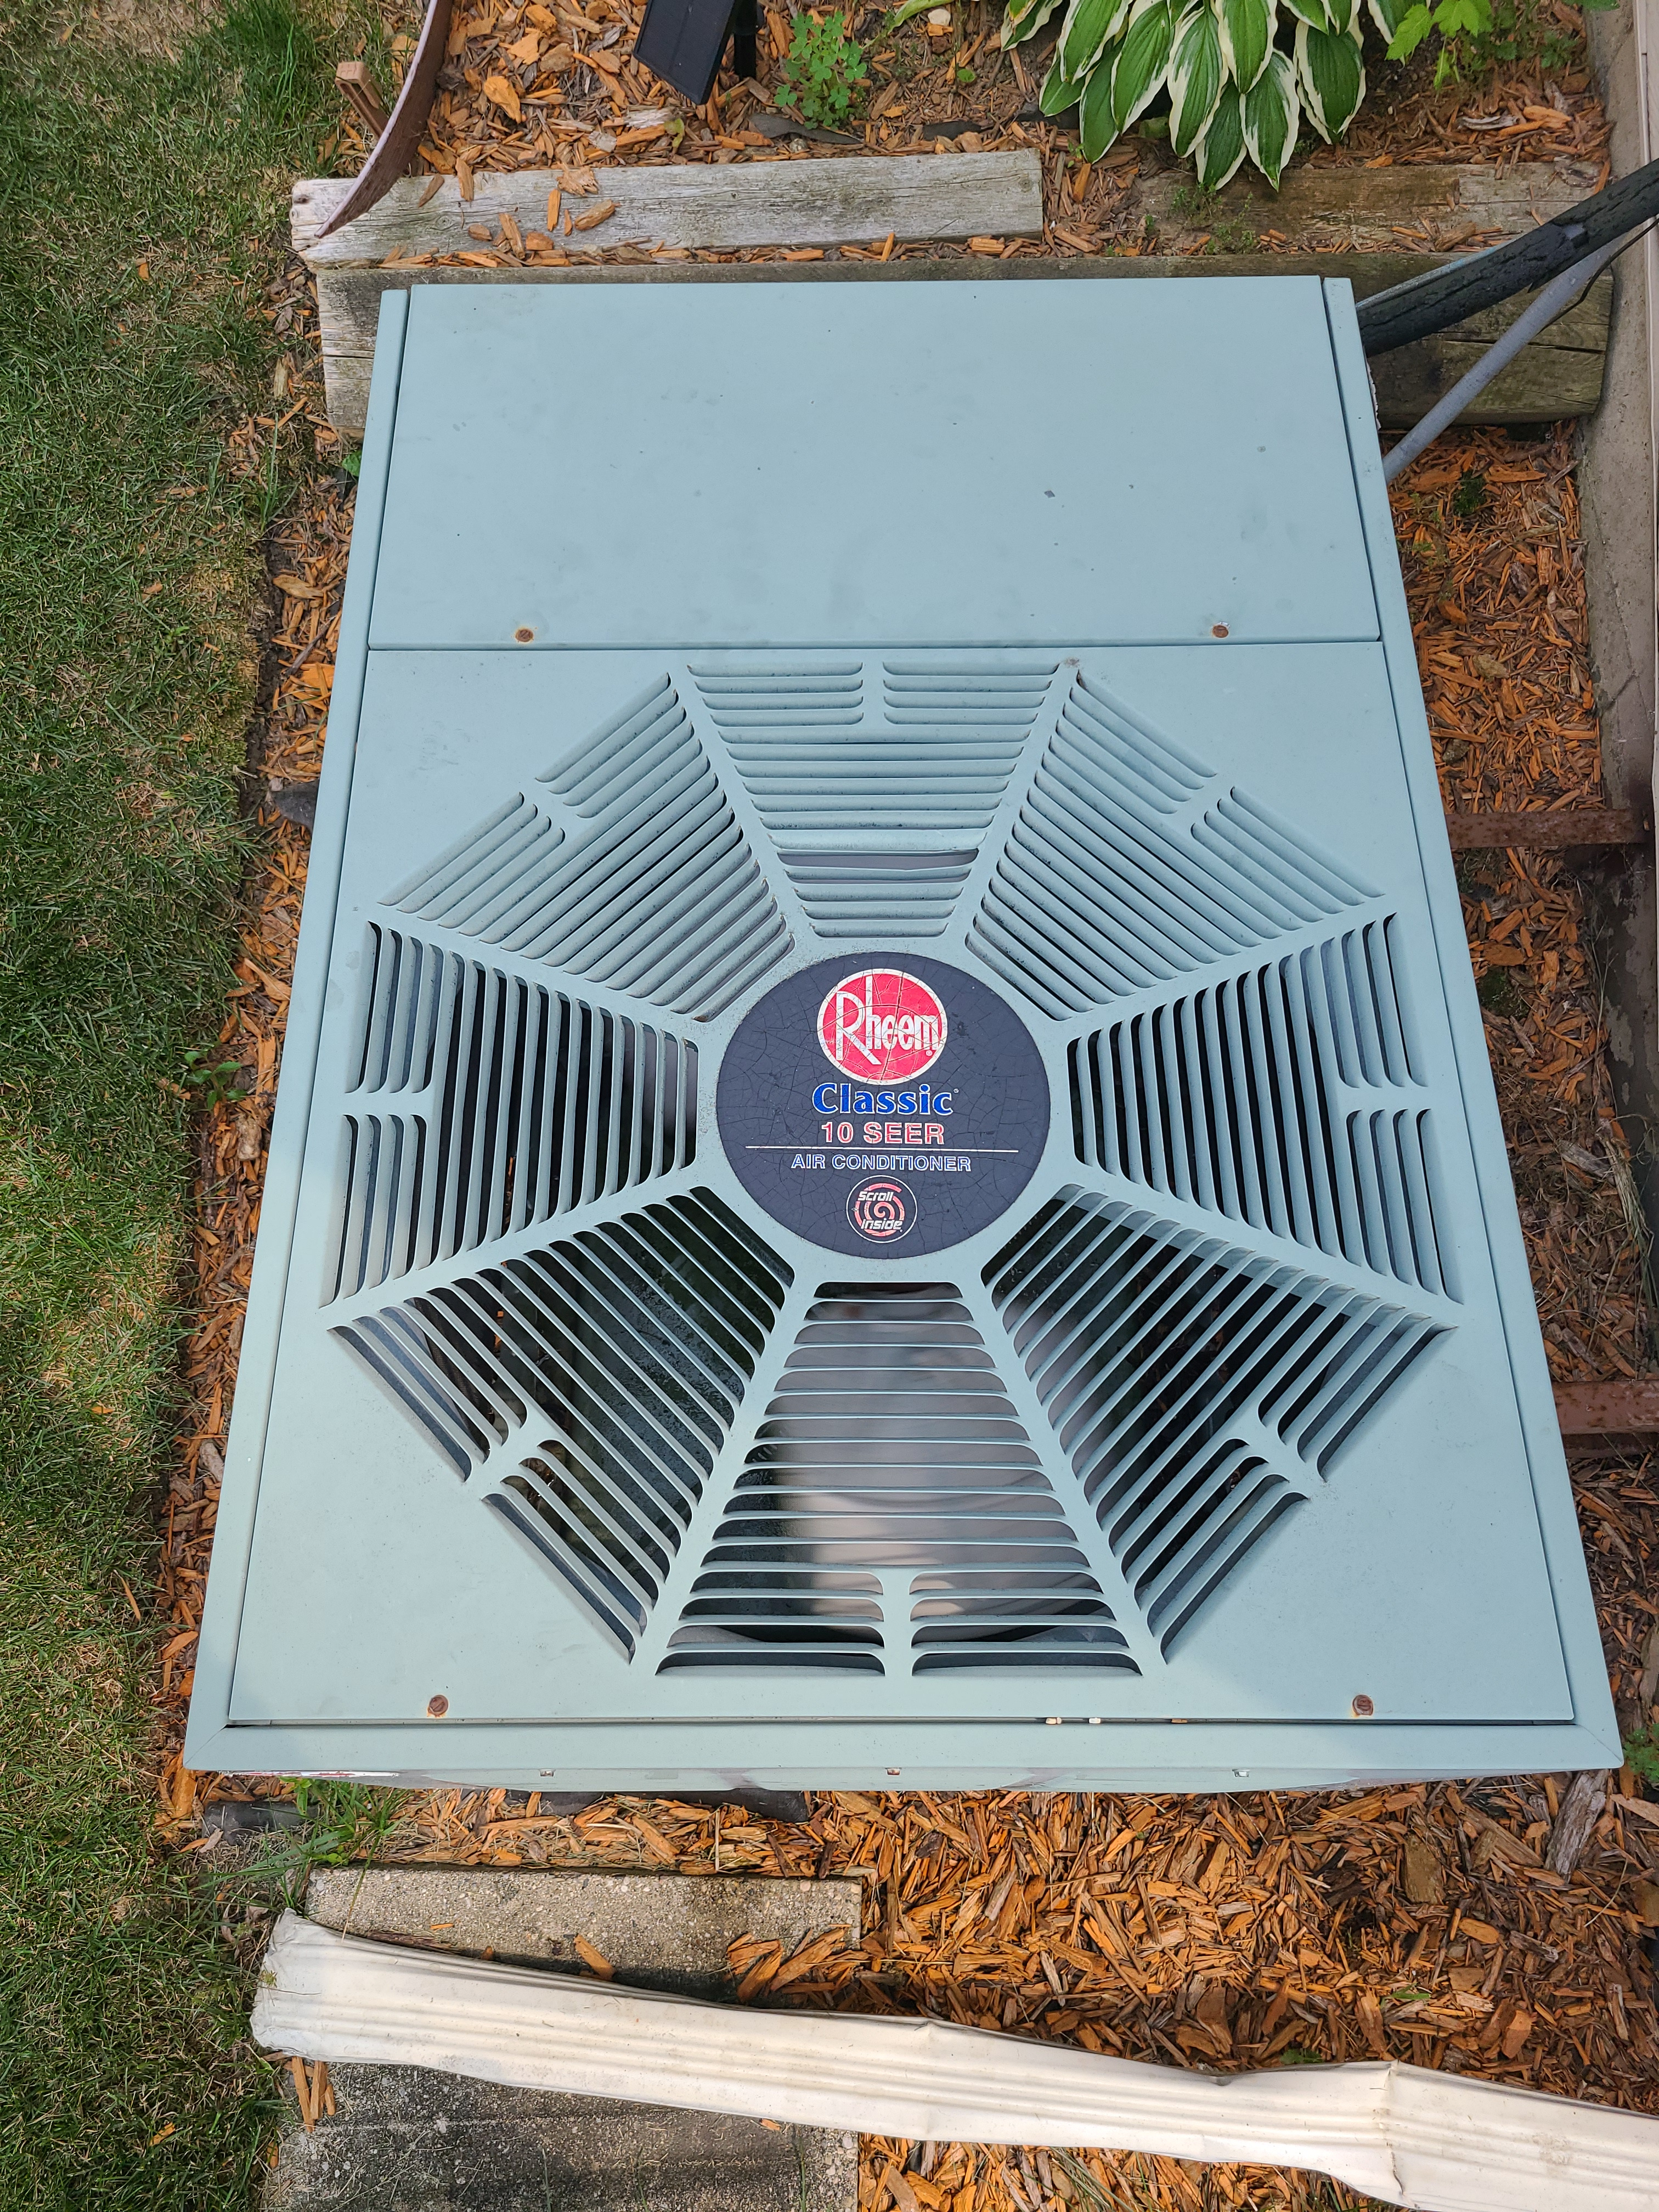 Performed preventative maintenance on a Rheem R22 system to extend the life of the unit. Checked voltage, amperage, temperatures, pressures, and microfarads. Washed condenser coil thoroughly.